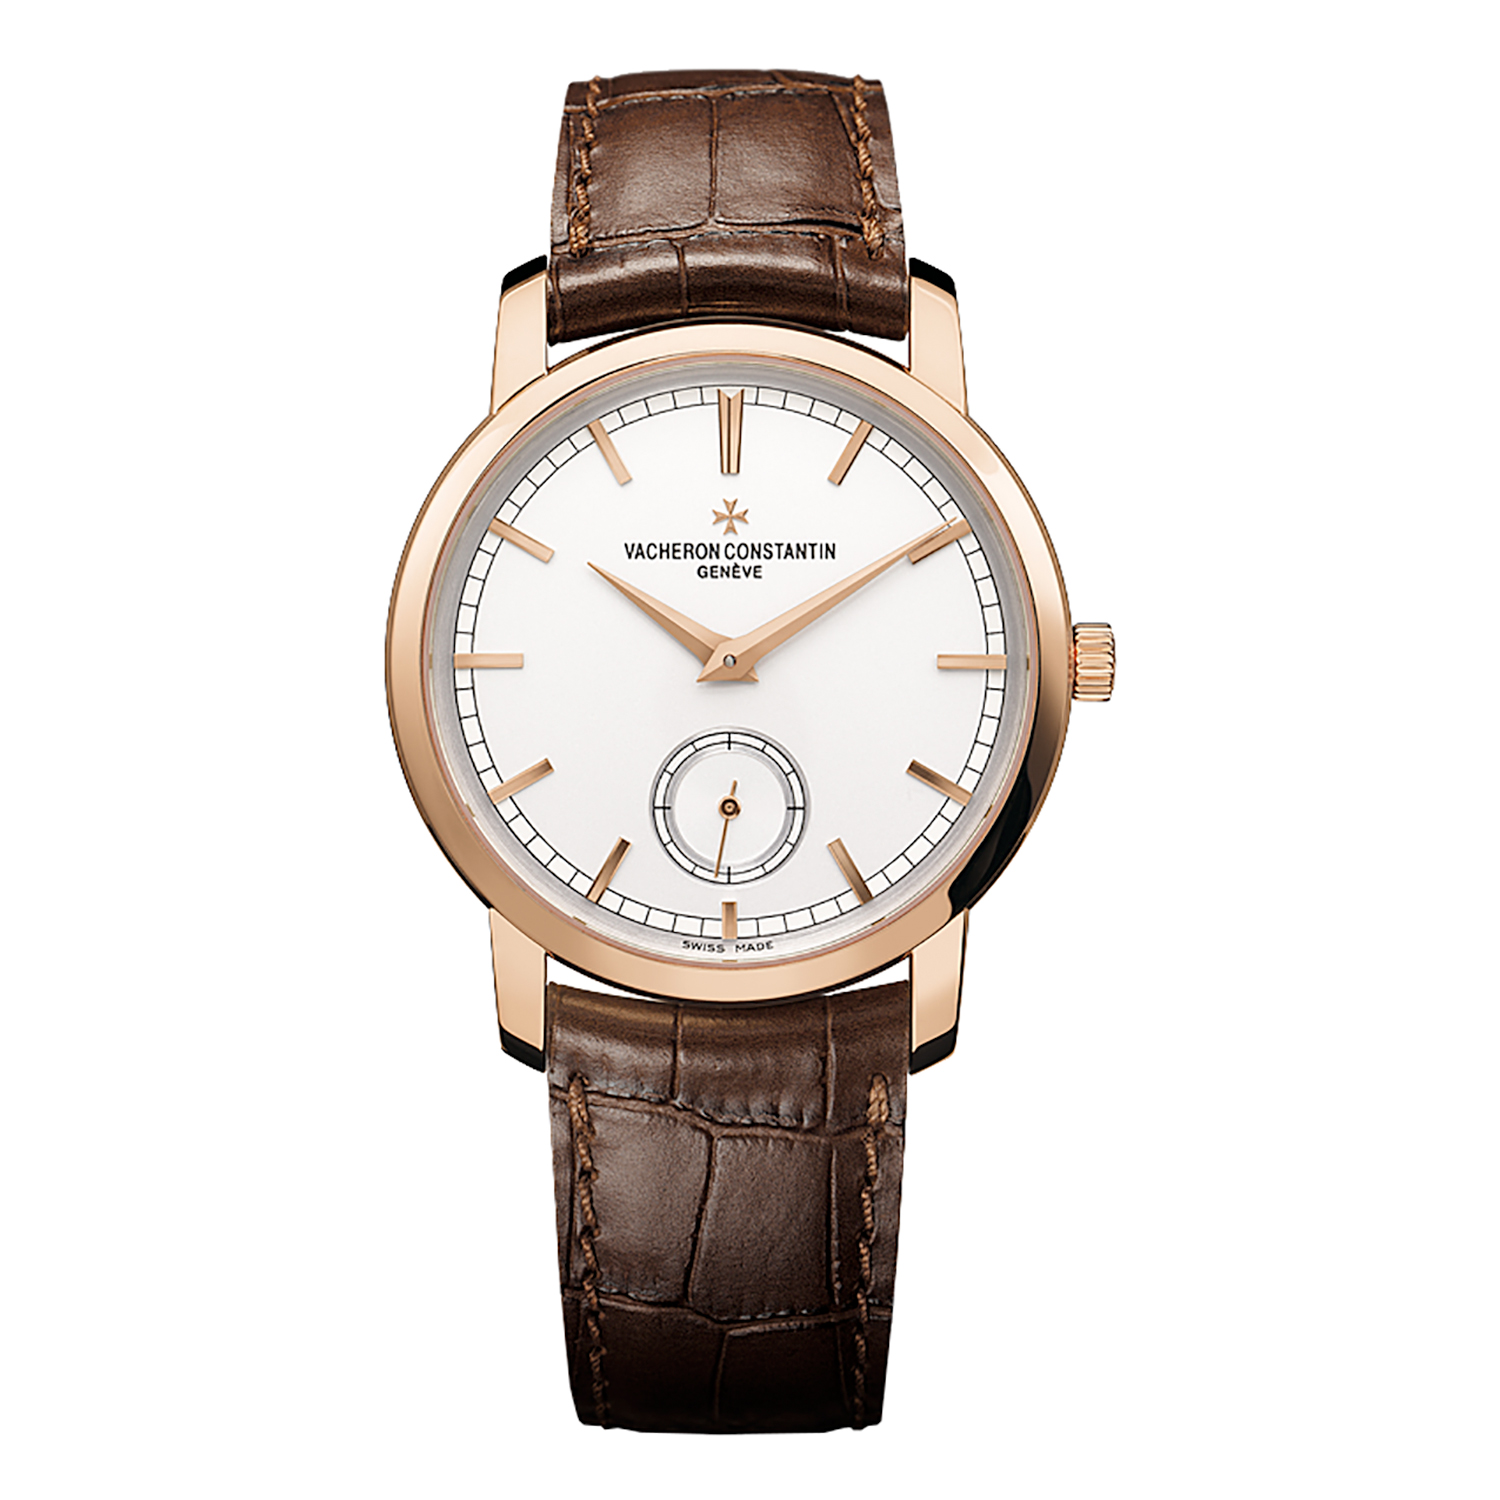 Patrimony traditionelle 82172/000R-9382